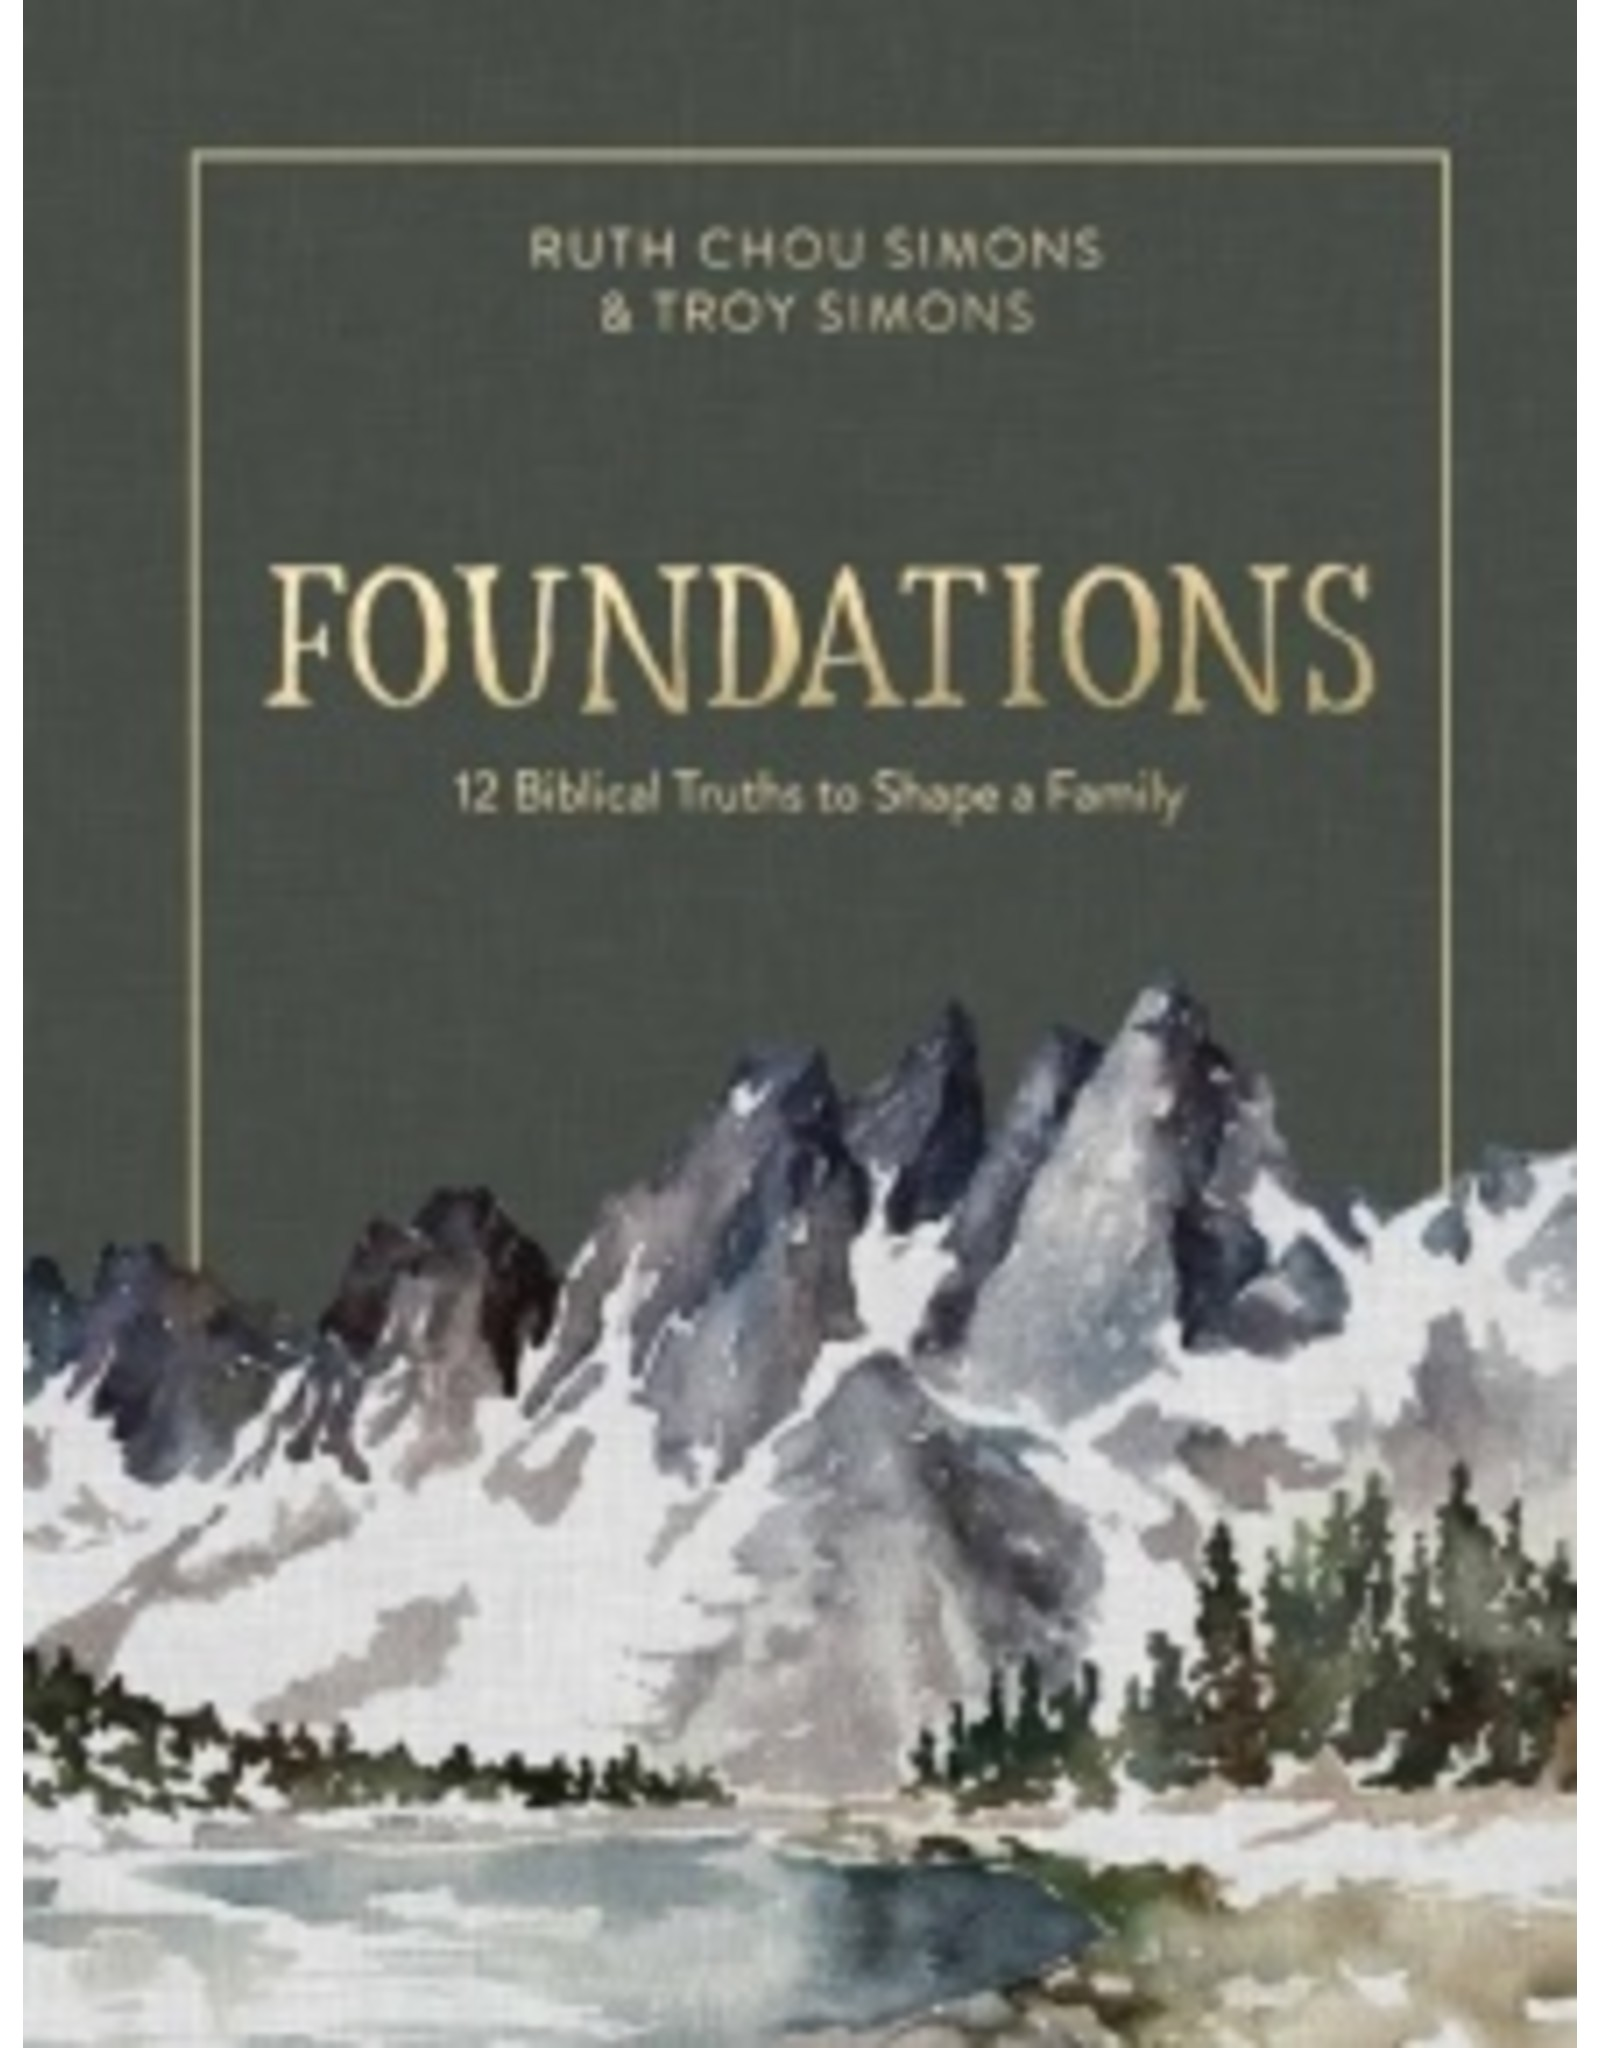 Simons Foundations - 12 Biblical Truths to Shape a Family